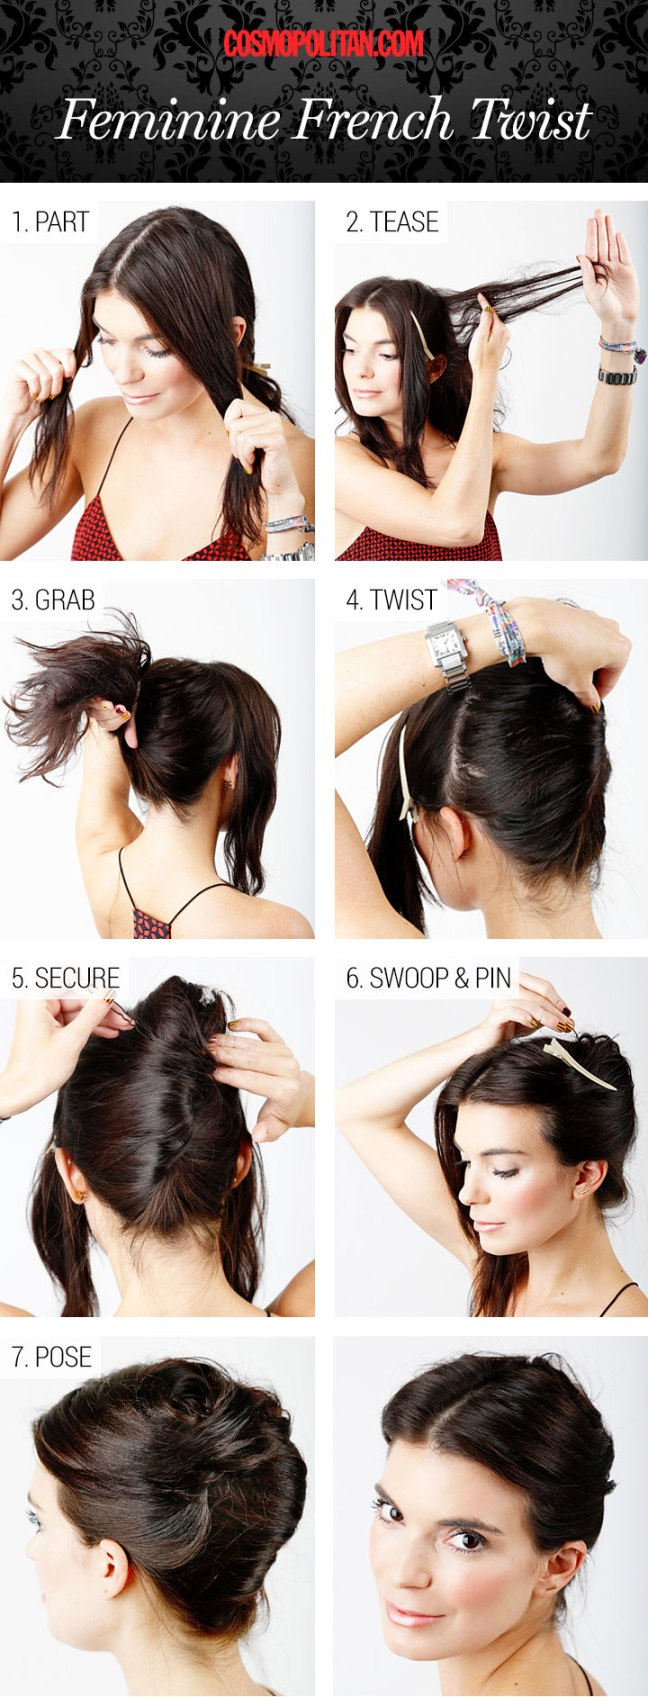 french twist hairstyle hair tutorial